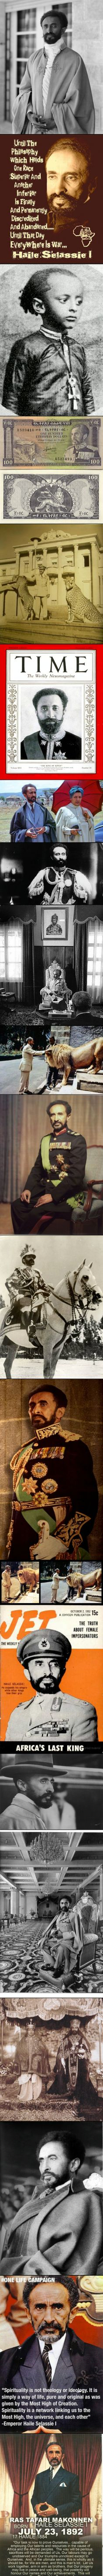 Haile Selassie I  (23 July 1892–27 Aug 1975), born Tafari Makonnen Woldemikael was Ethiopia's regent from 1916 to 1930 & Emperor of Ethiopia from 1930 to 1974. He was the heir to a dynasty that traced its origins by tradition from King Solomon & Queen Makeda, Empress of Axum, known in the Abrahamic tradition as theQueen of Sheba. Haile Selassie is a defining figure in both Ethiopian and African history